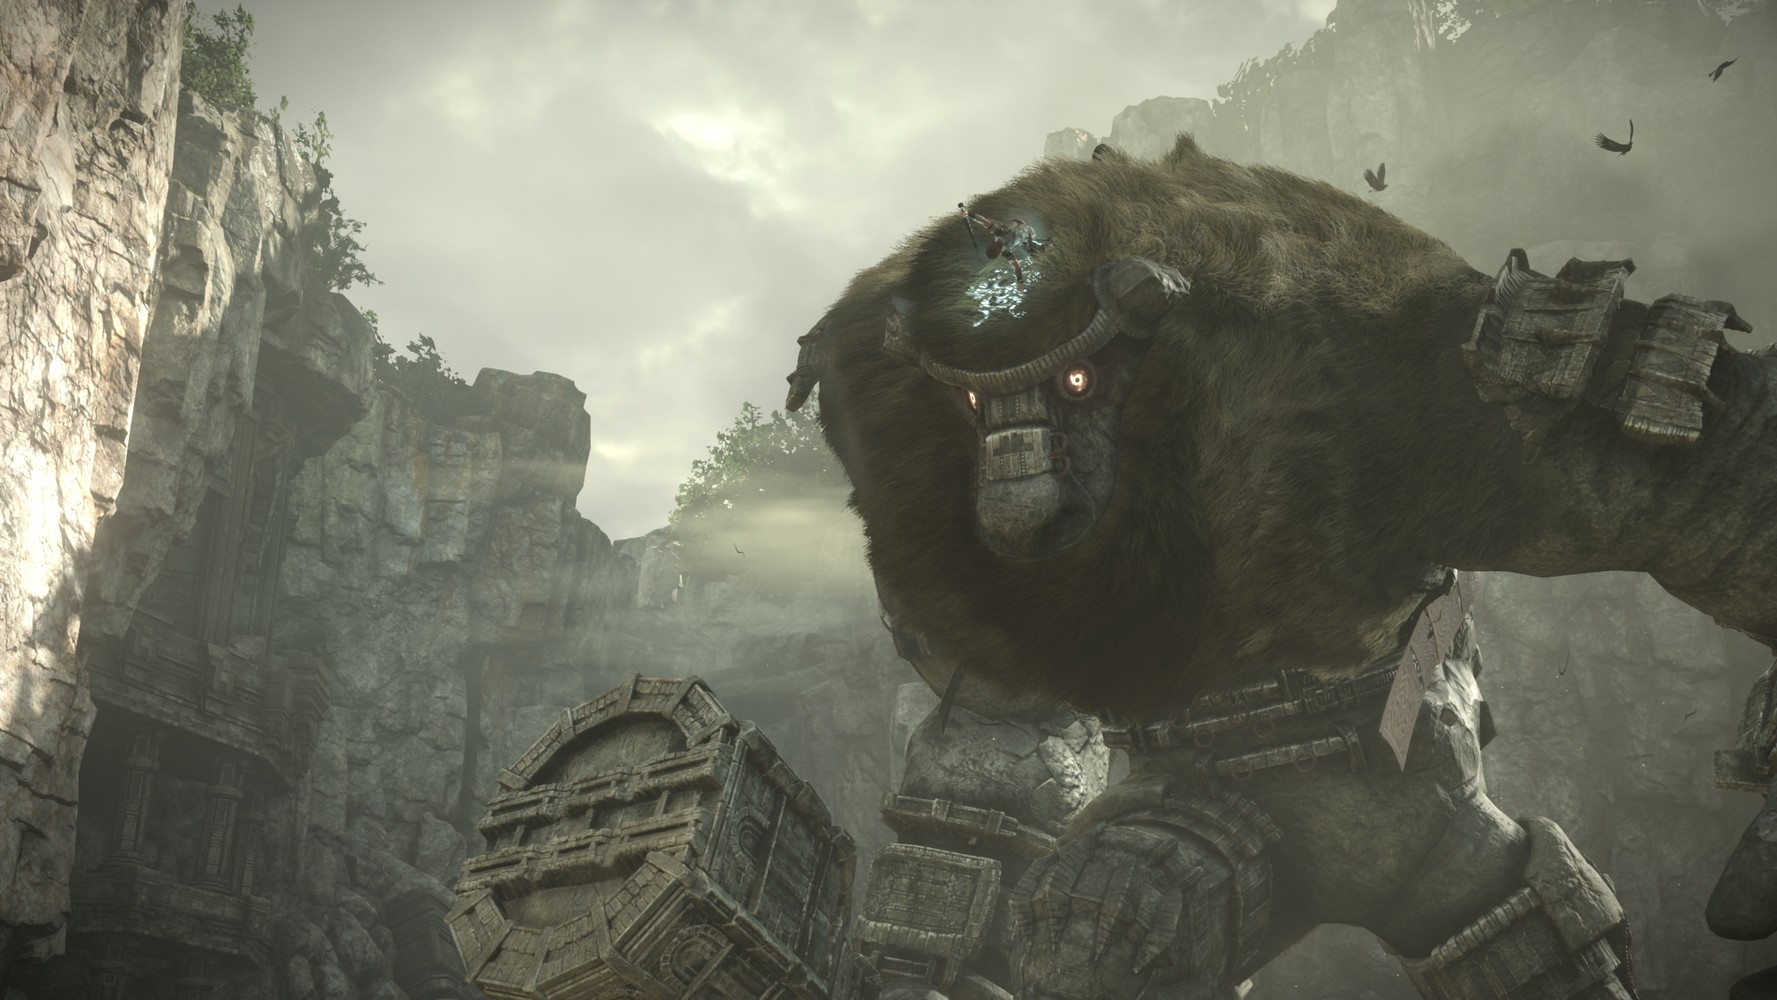 E3 2017: Shadow of the Colossus , trailer a sorpresa alla conferenza Sony